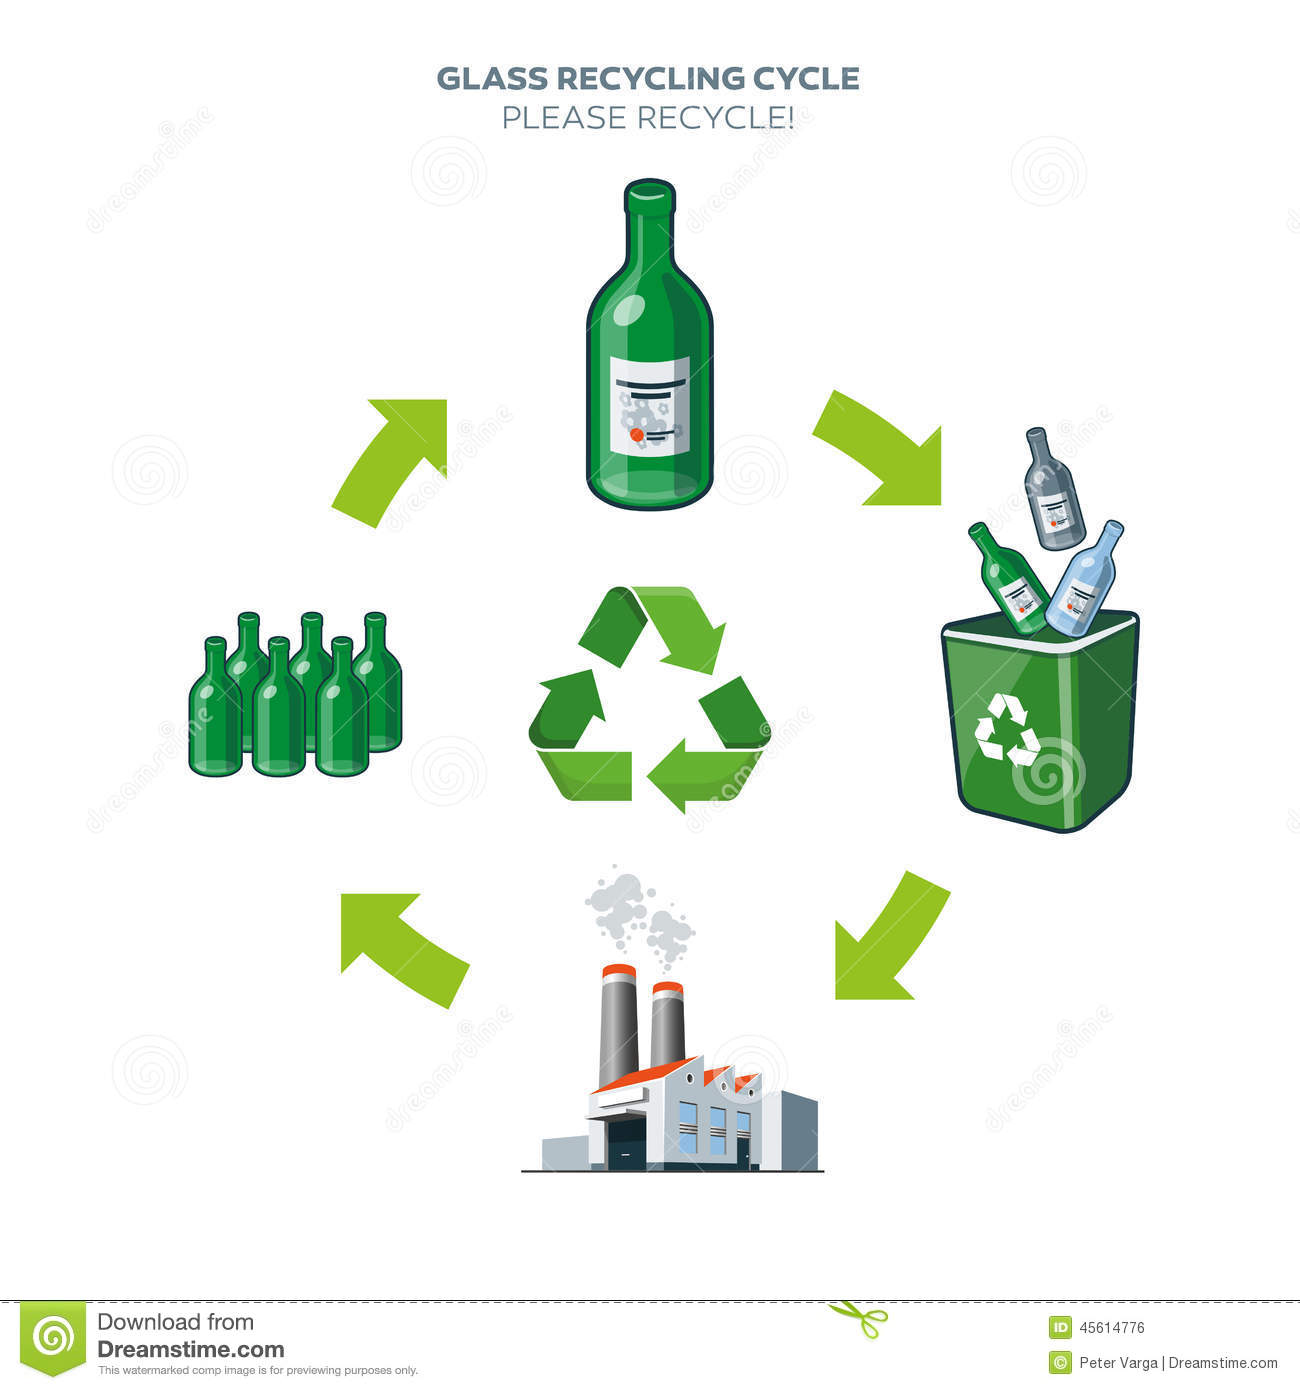 Life cycle of glass bottle recycling simplified scheme illustration in ...